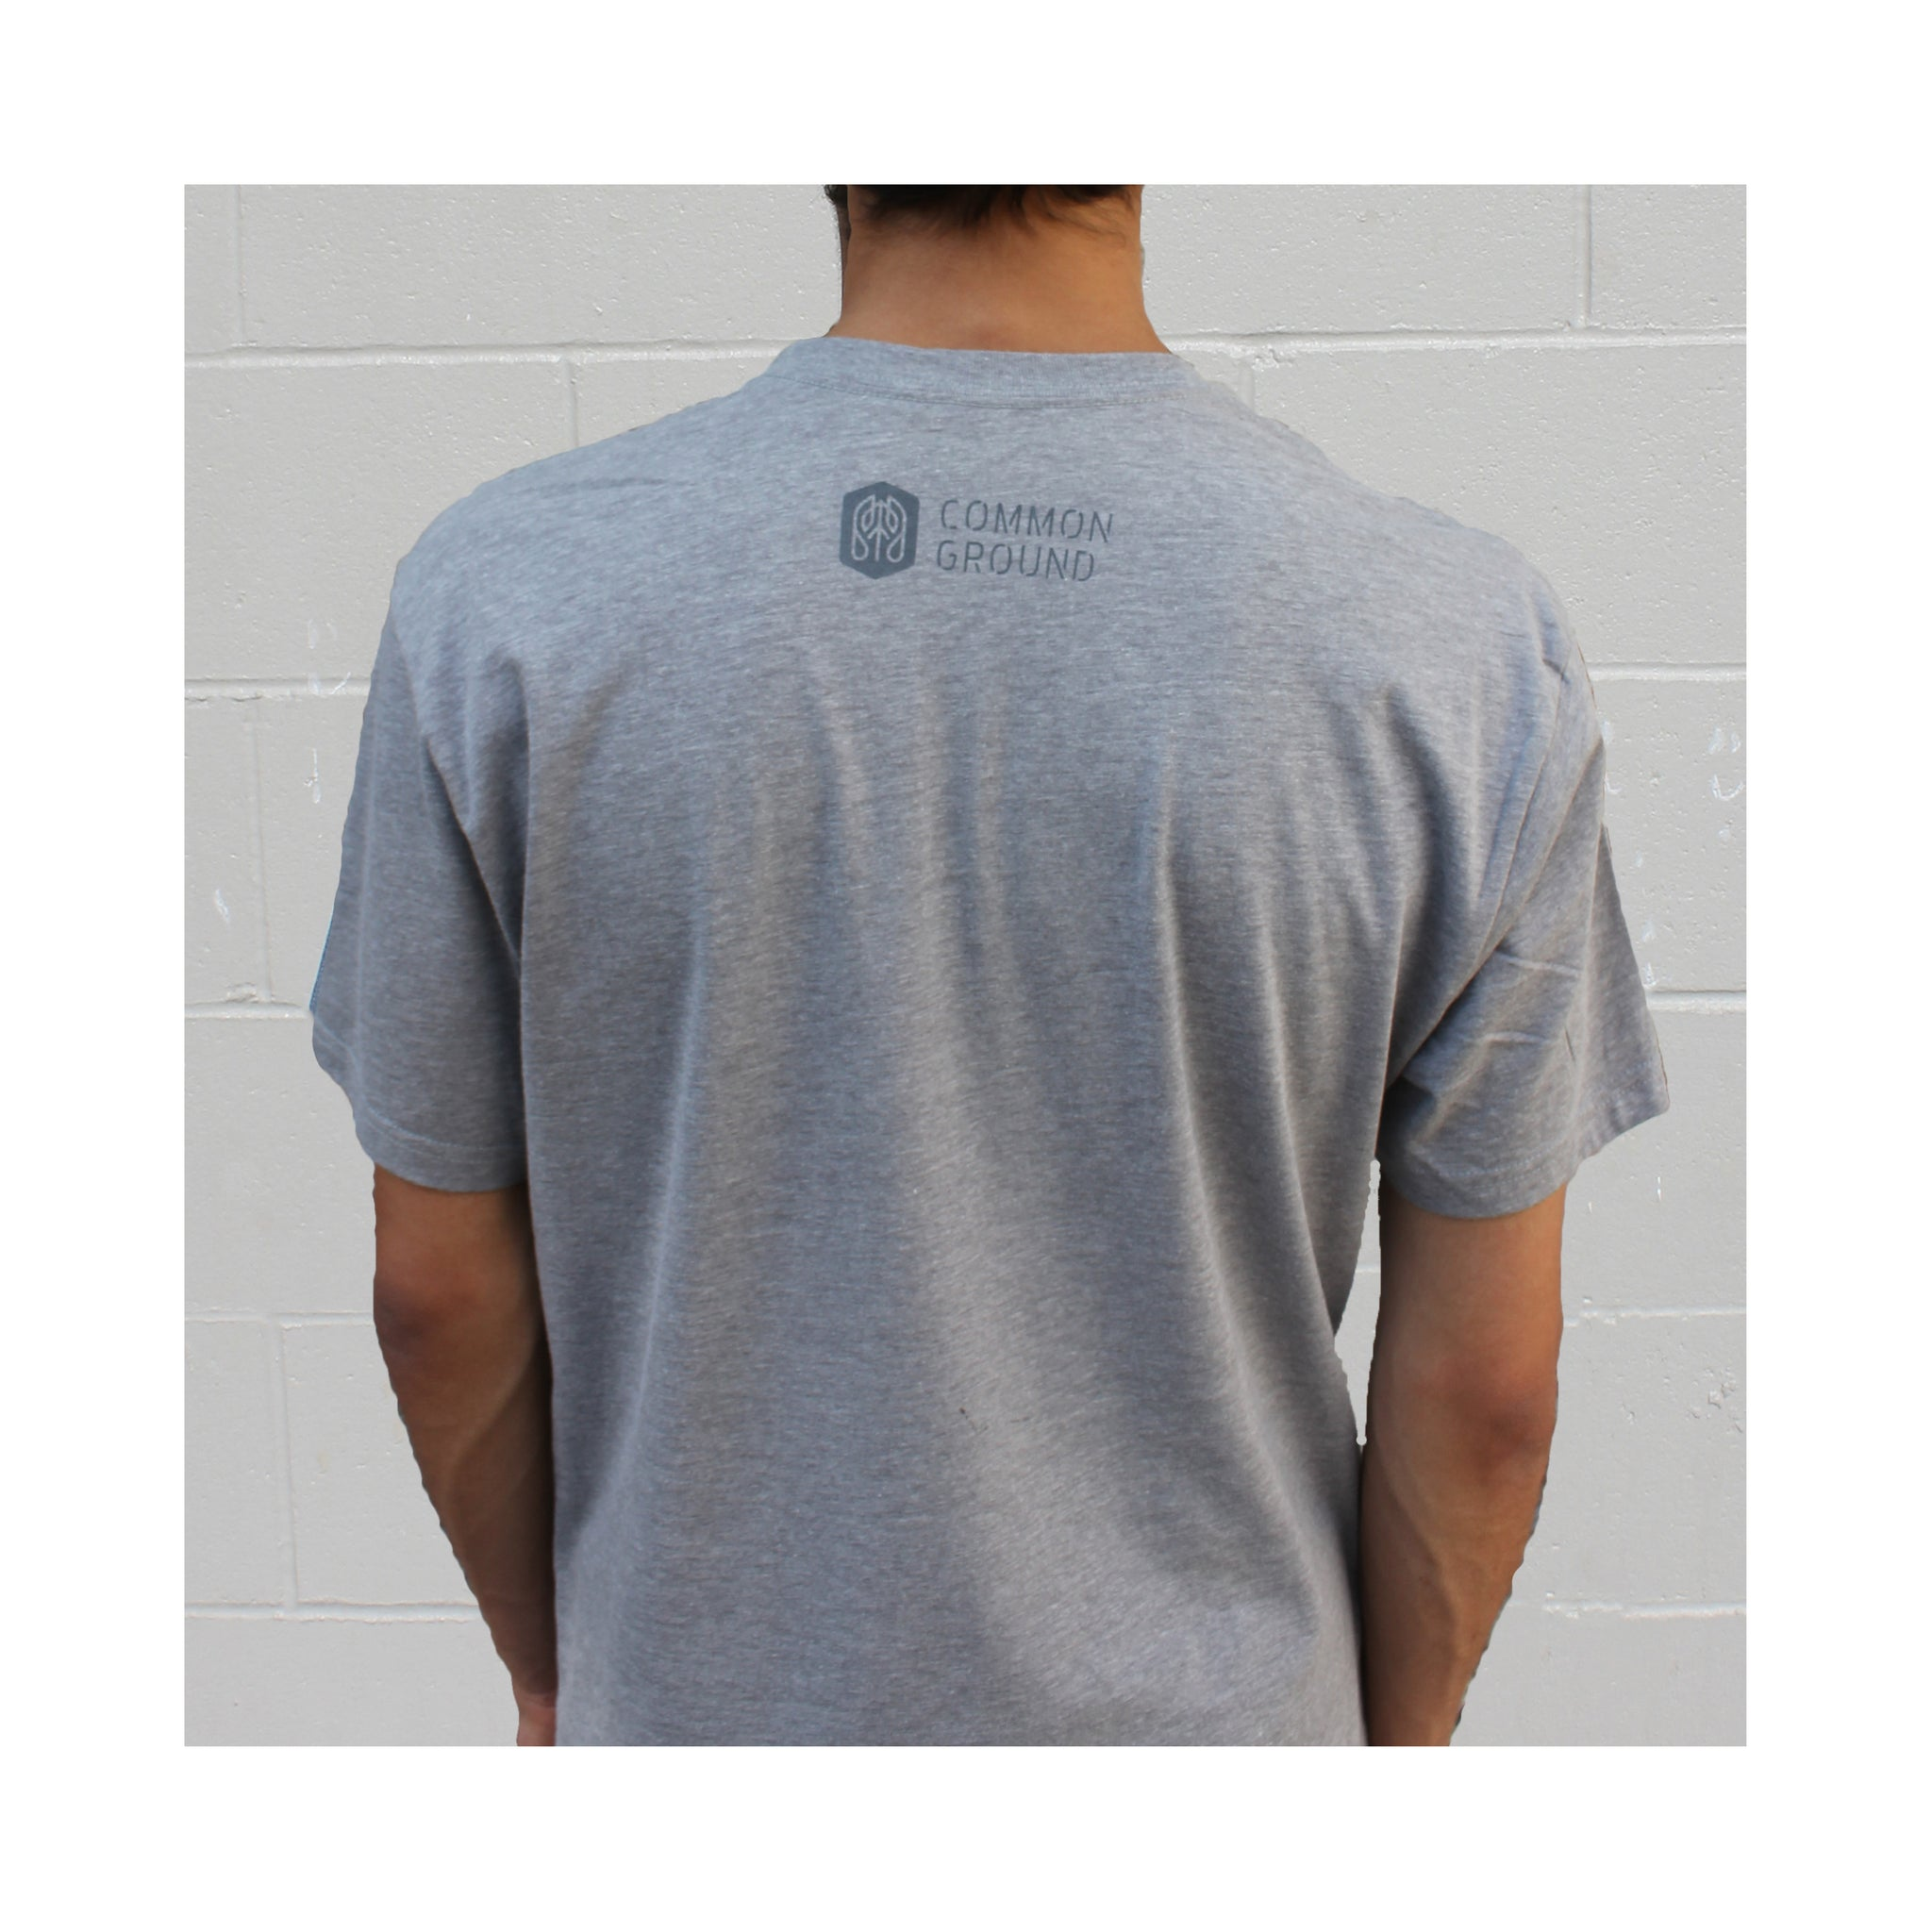 Dark_Heather_Gray - Stand For Progress T shirt Back on Model